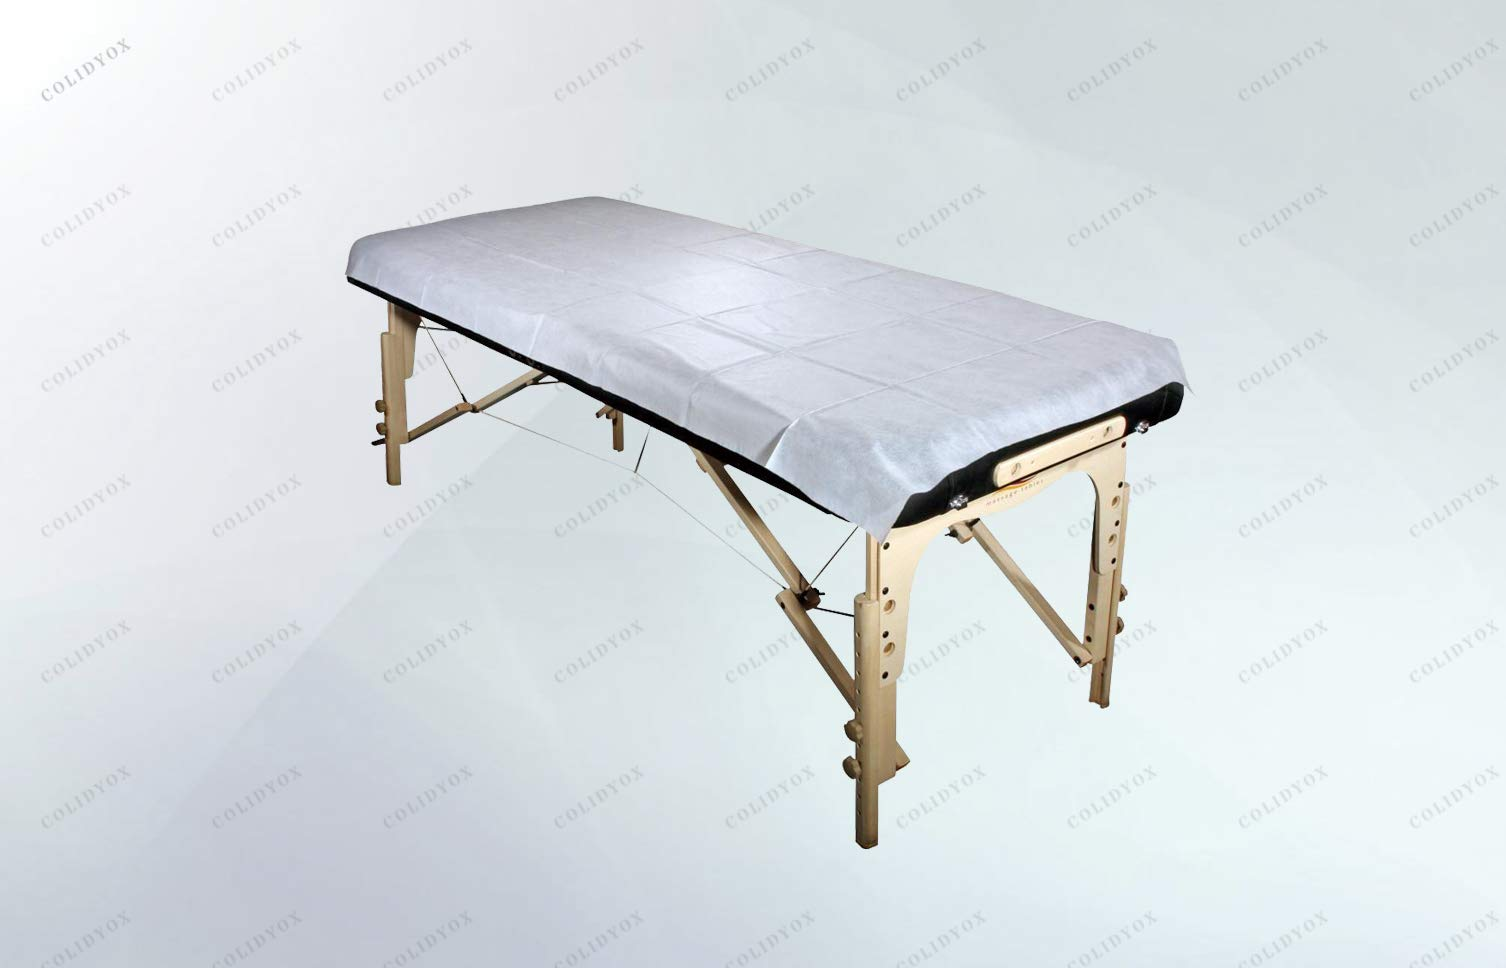 COLIDYOX_Unnecessary laundry,disposable sheets,well suited for event work, Spas, Tattoo Shops, or Medical treatments,thin poly backing to protect tables from moisture, oil and sweat